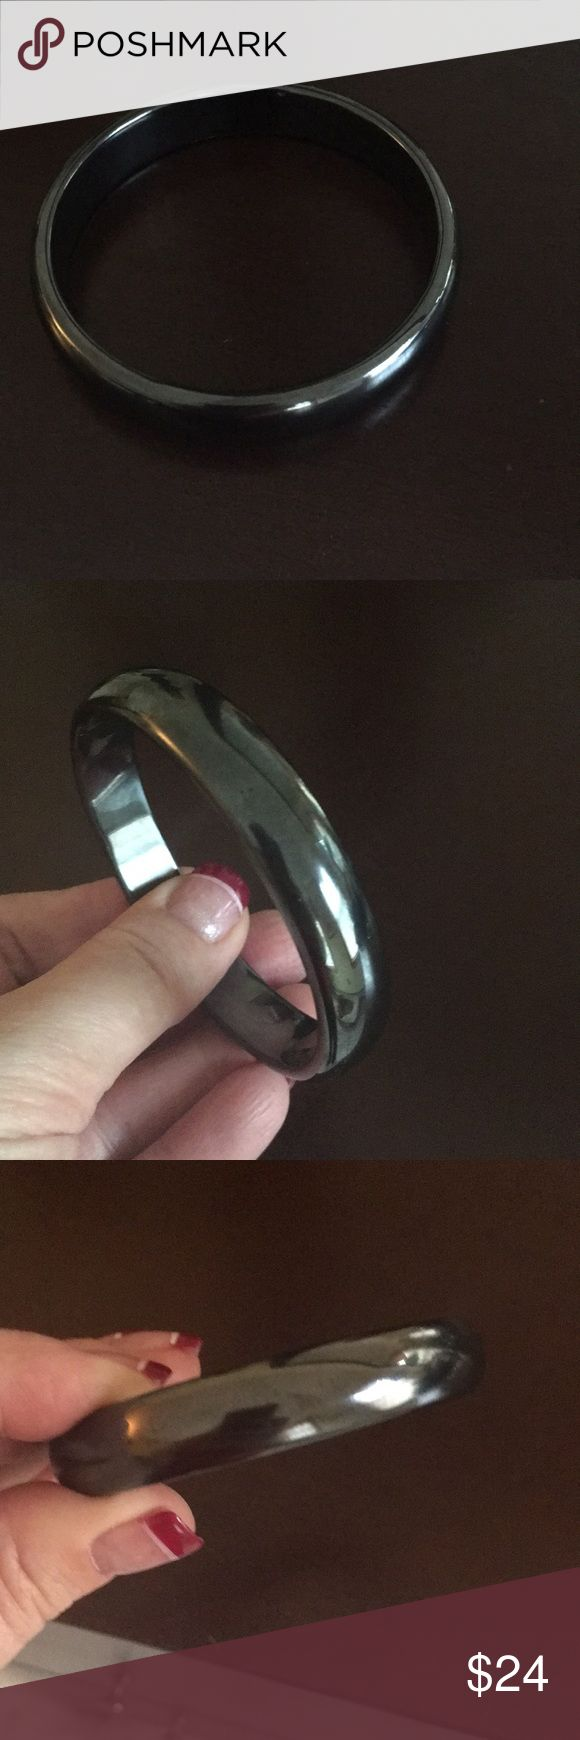 Hematite ladies bangle approx half inch thick Hematite bangle purchased on vacation fits approx 7.5 wrist very modern Jewelry Bracelets